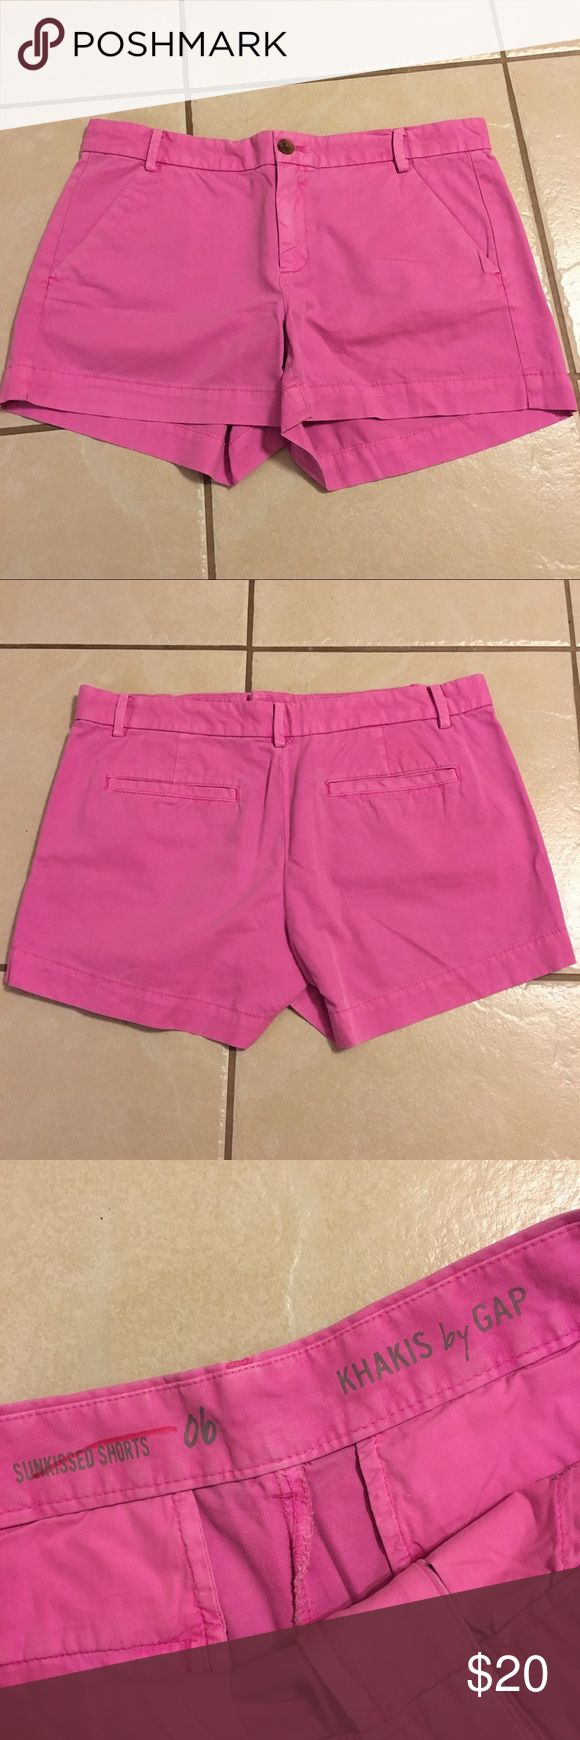 Gap chino shorts Khakis by Gap shorts. Chino style, size 6. Like new condition (mark inside is because they were purchased from the Gap outlet store) GAP Shorts